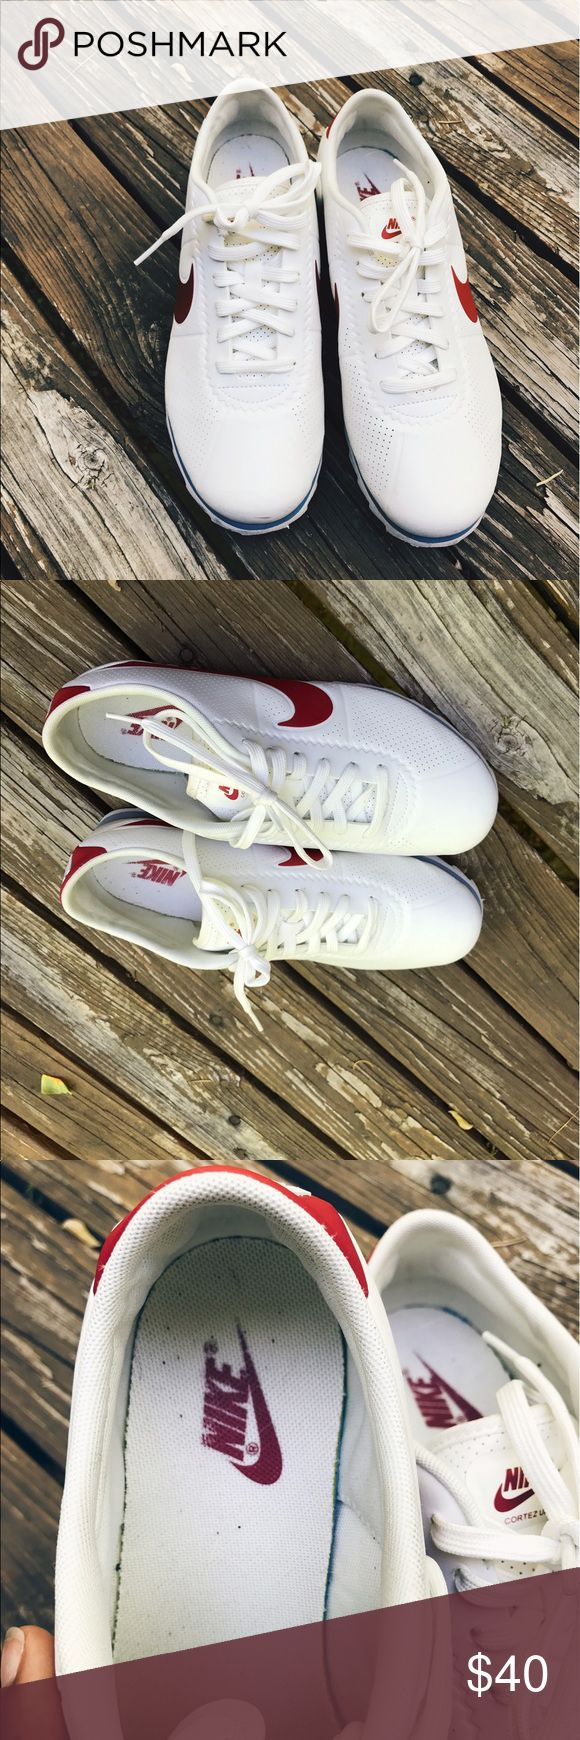 Classic Nike Cortez Red White and Blue Worn a couple of times. Great condition. I'm moving and don't wear these at all so I'm selling them Nike Shoes Sneakers